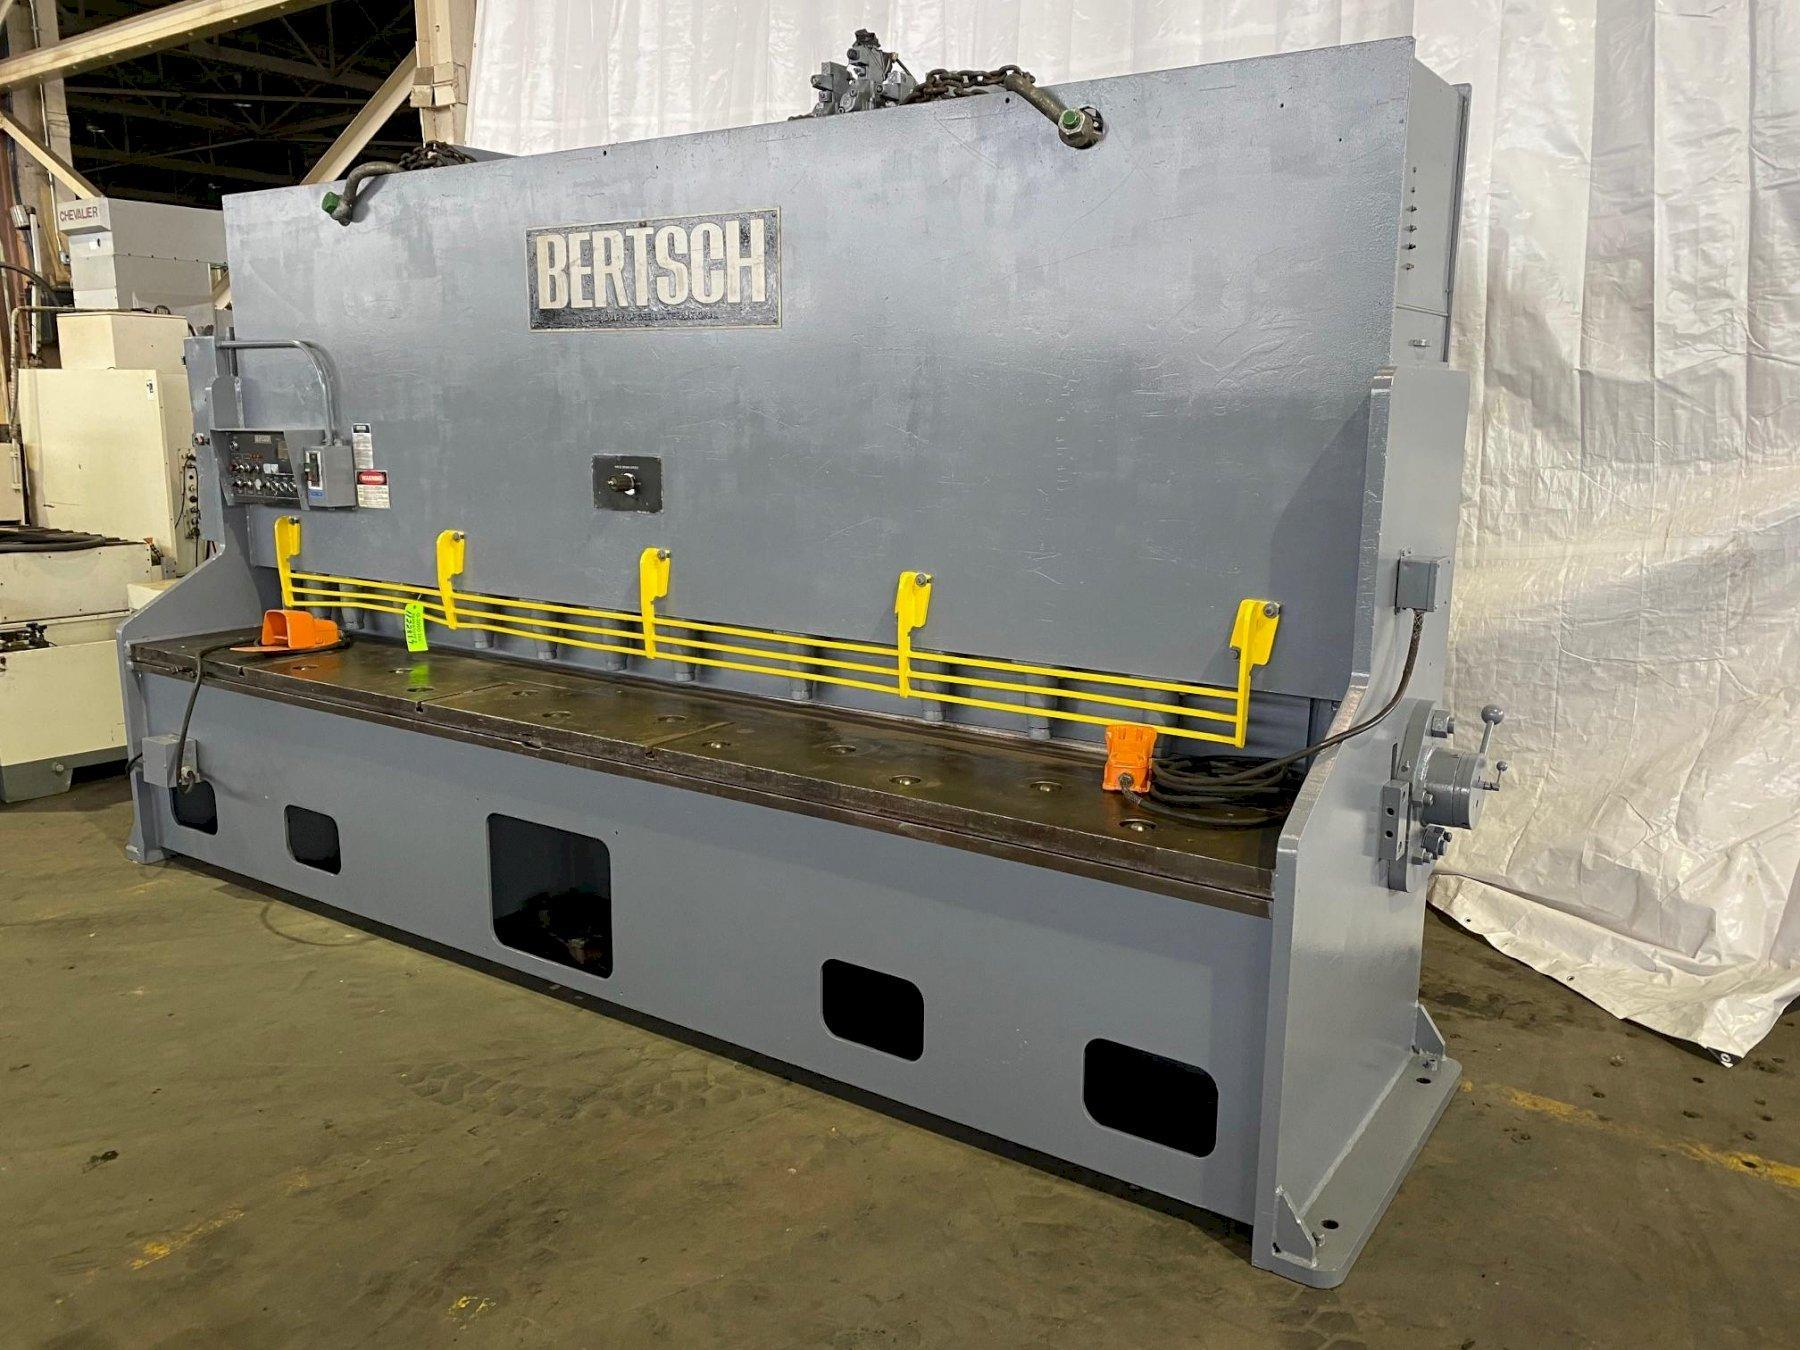 "12' x 1/2"" BERTSCH HYDRAULIC POWER SQUARING SHEAR"